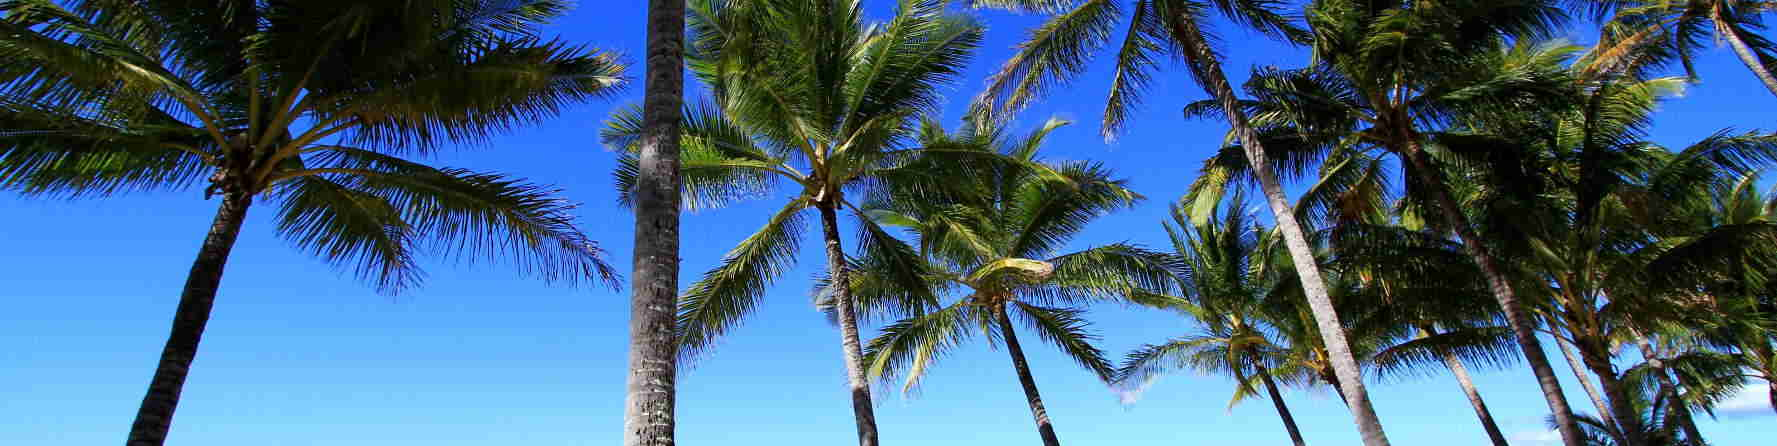 Where to stay in Palm Cove?